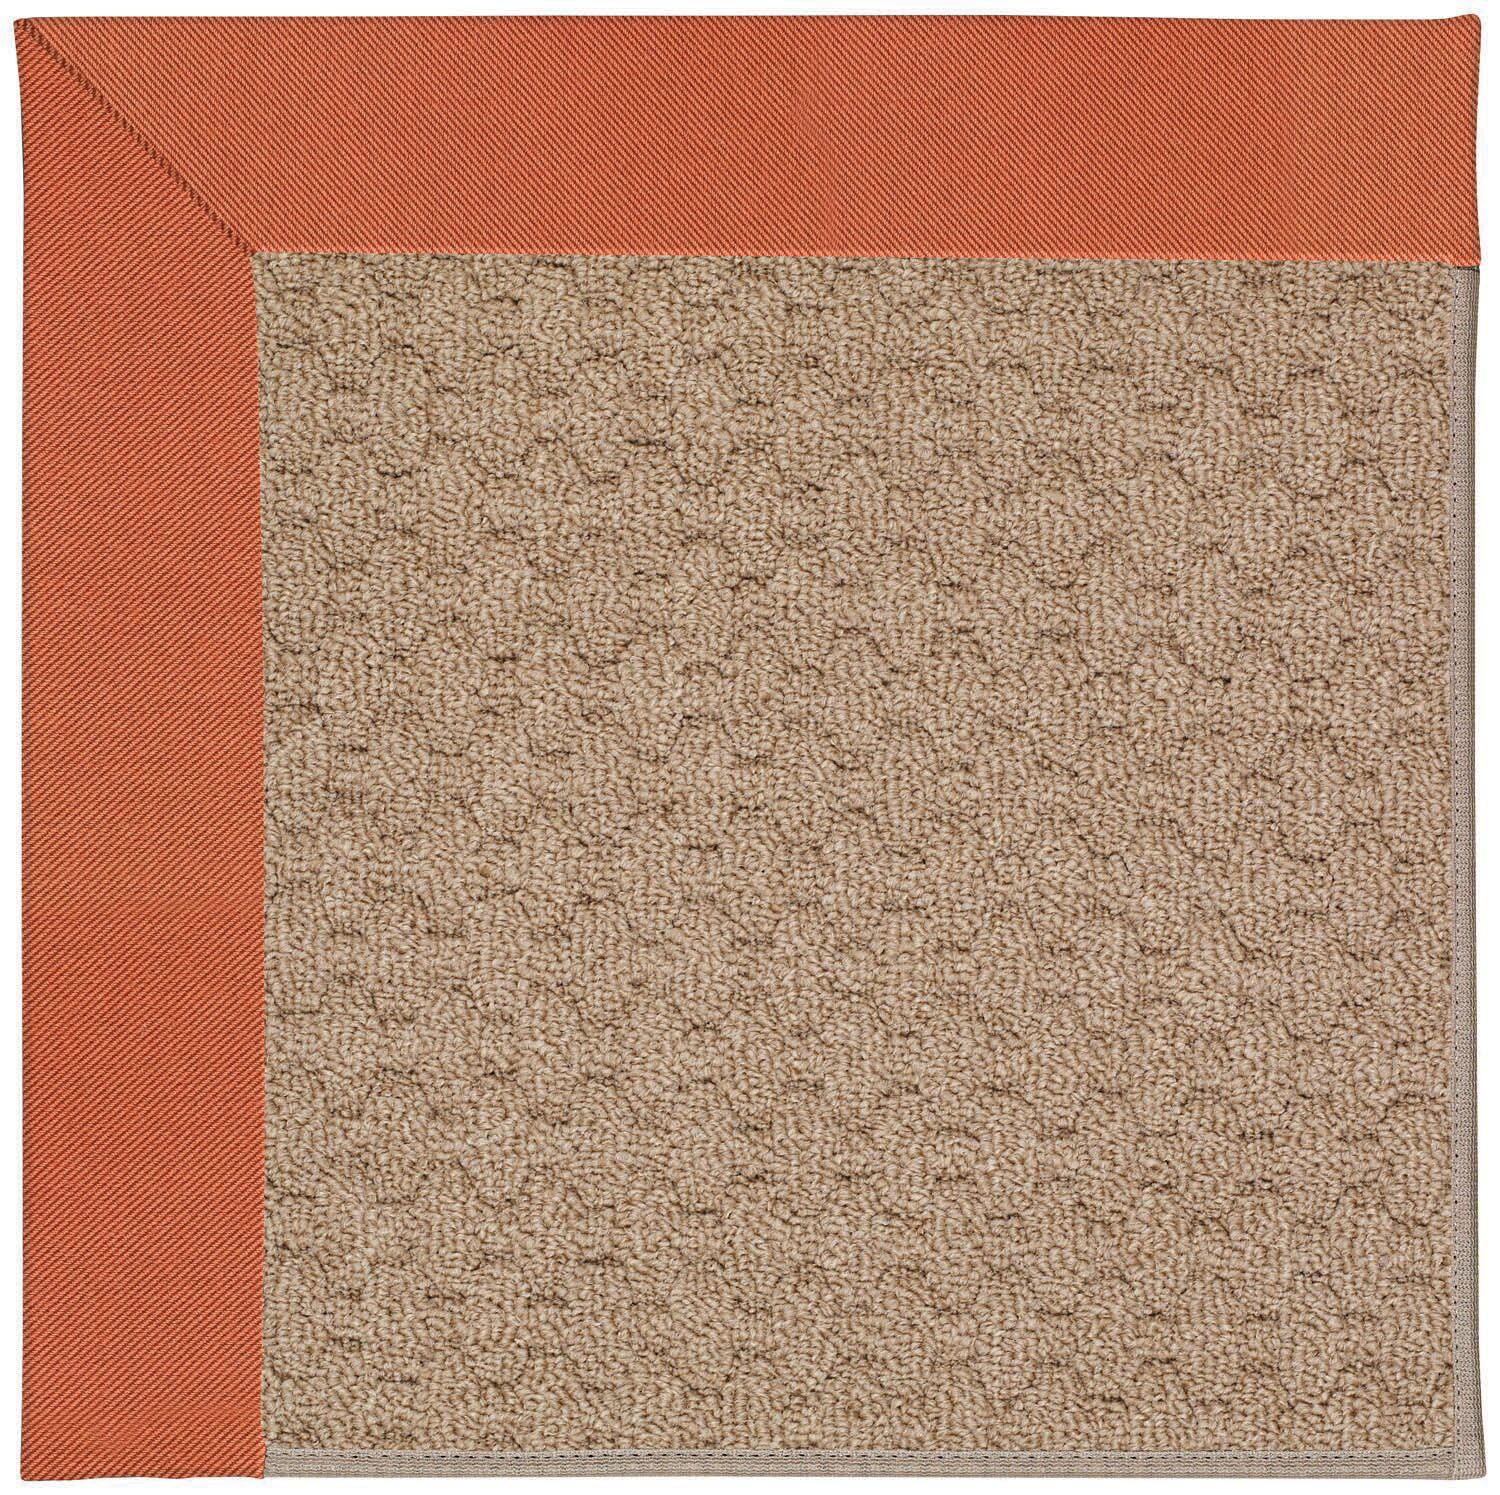 Lisle Machine Tufted Clay/Brown Indoor/Outdoor Area Rug Rug Size: Rectangle 7' x 9'